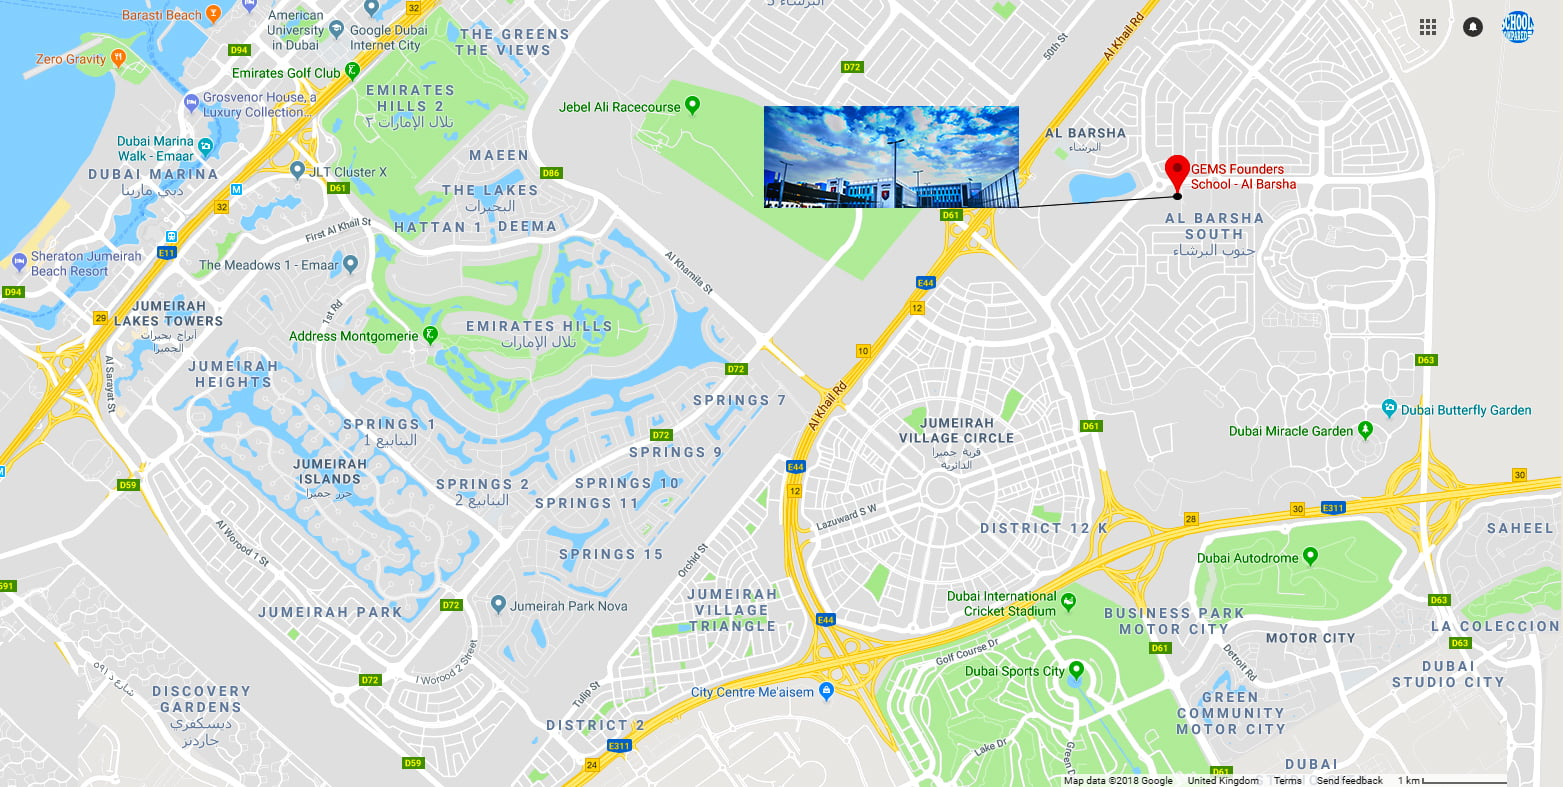 Map showing the location of GEMS Founders School in Dubai including directions to the school